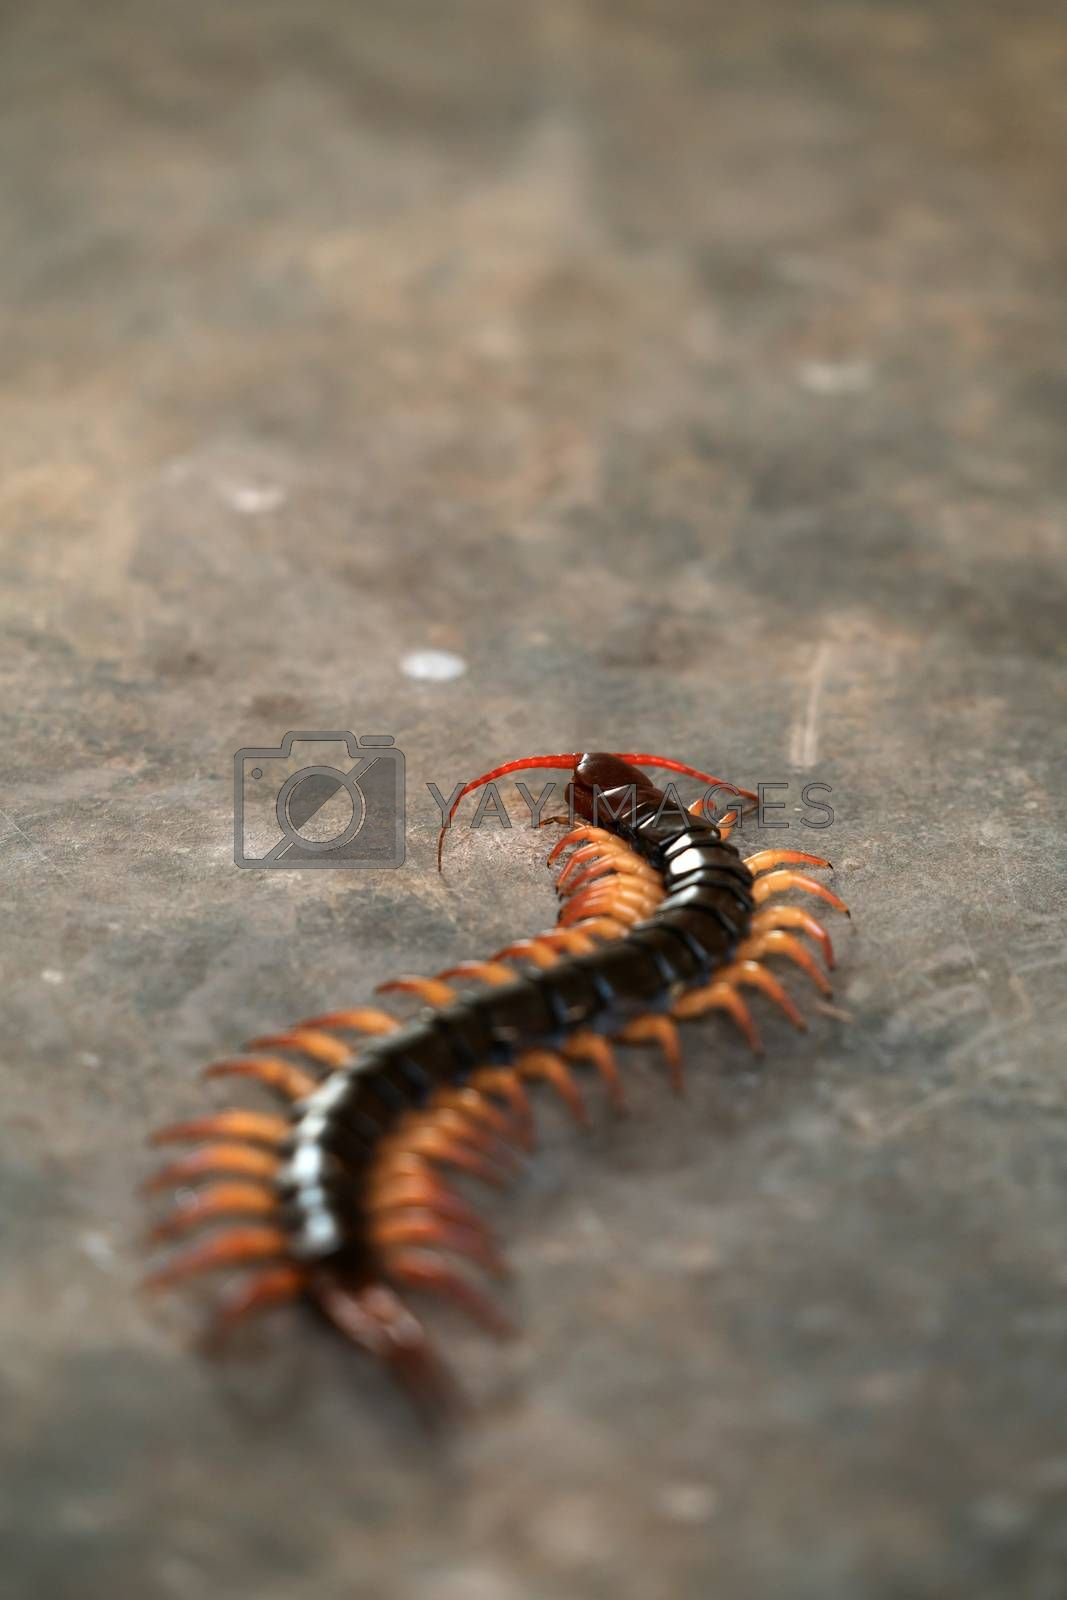 giant centipede on cement floor by anankkml